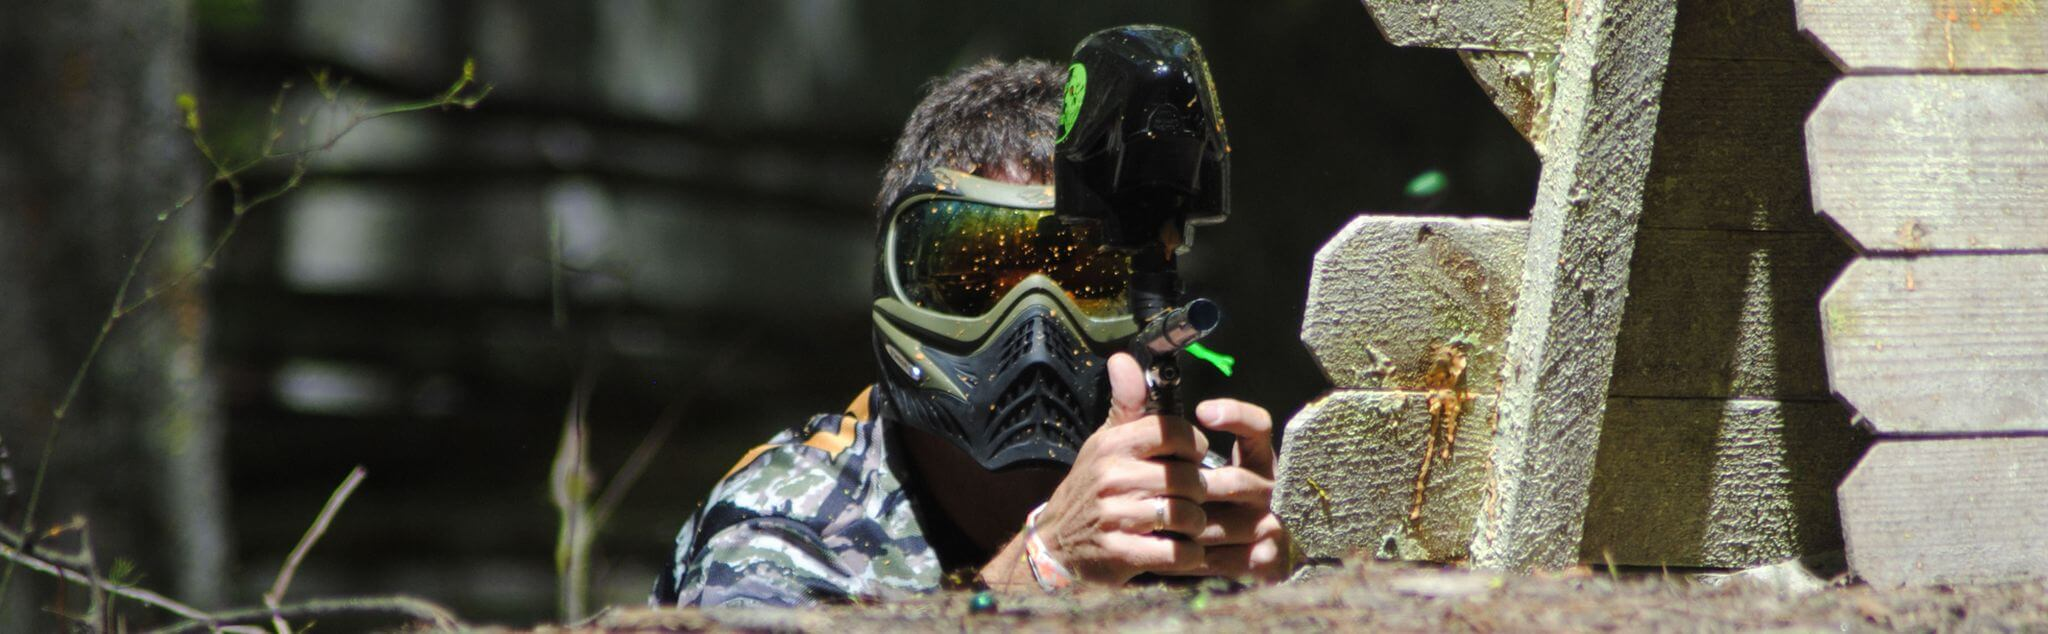 Paintball dans Ain